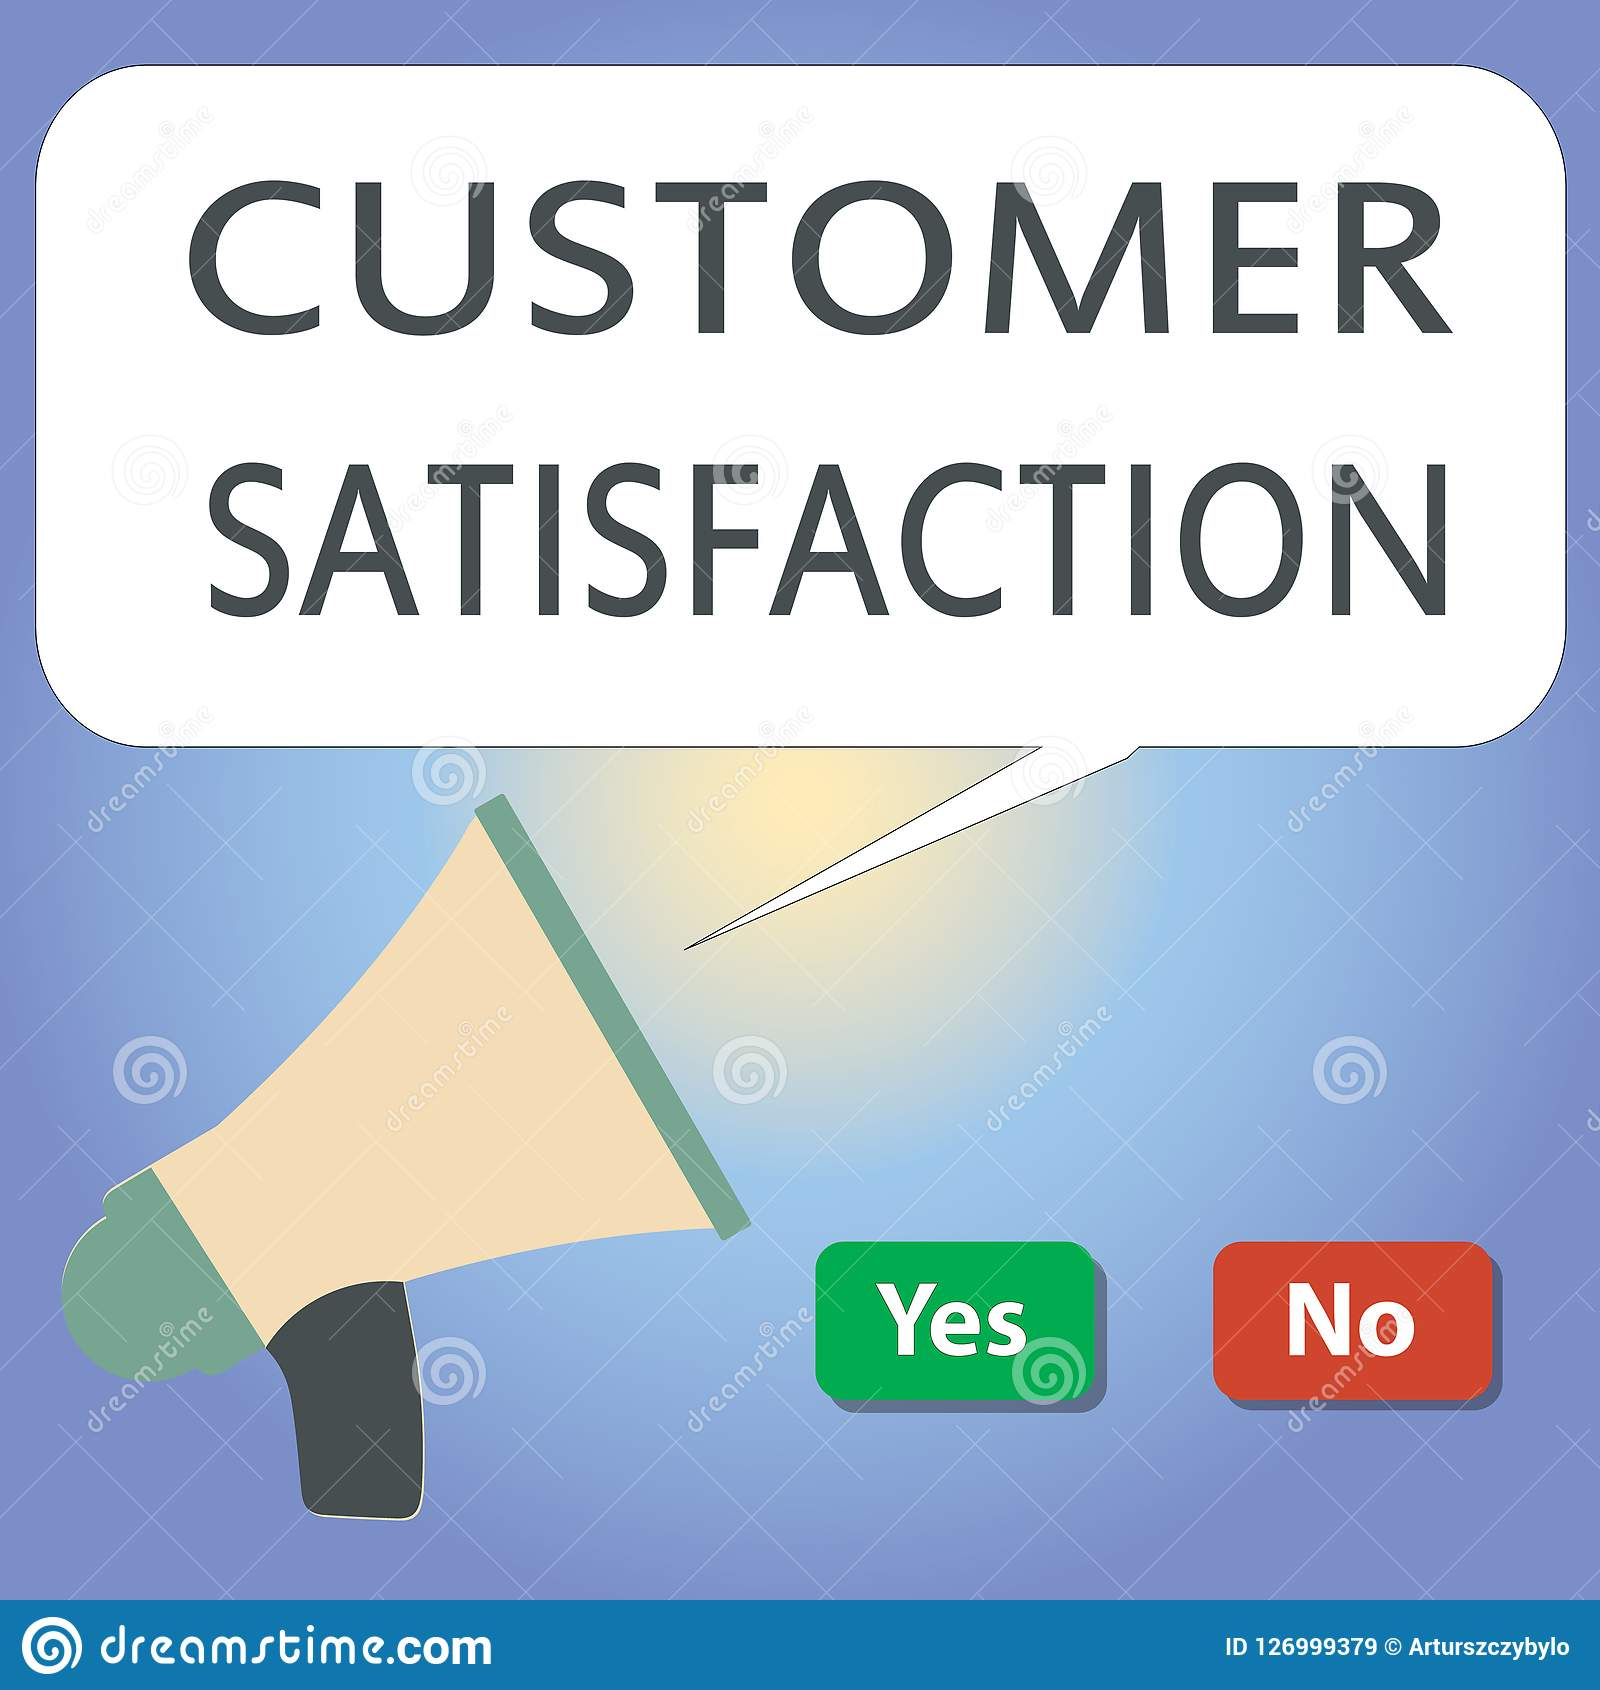 Essay about customer satisfaction